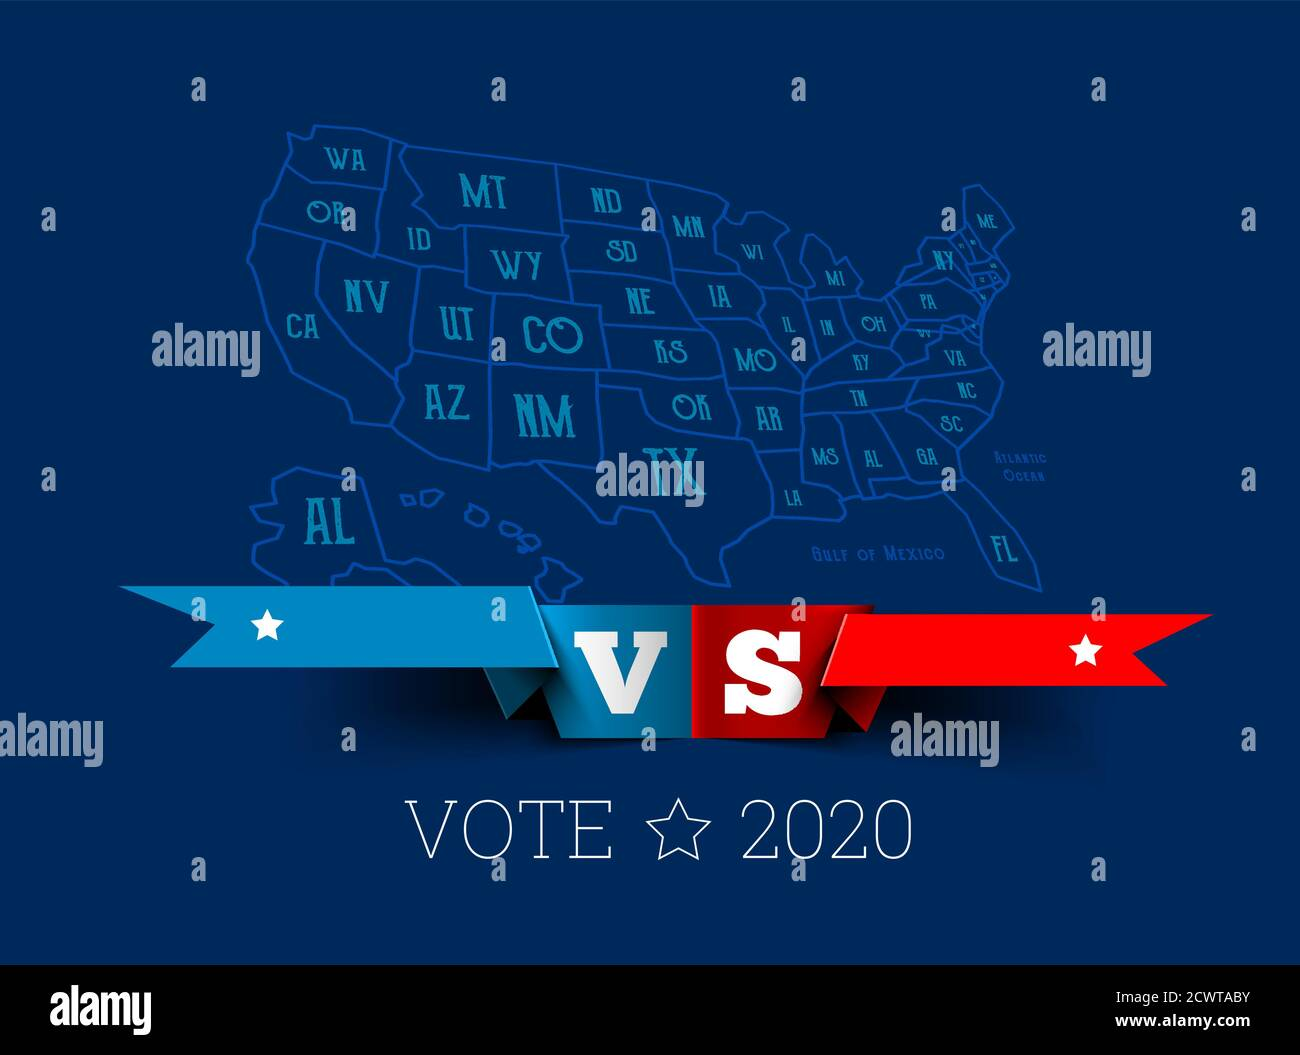 Presidential elections in the United States. Donald Trump vs. Joe Biden with map of America. Vector illustration Stock Vector